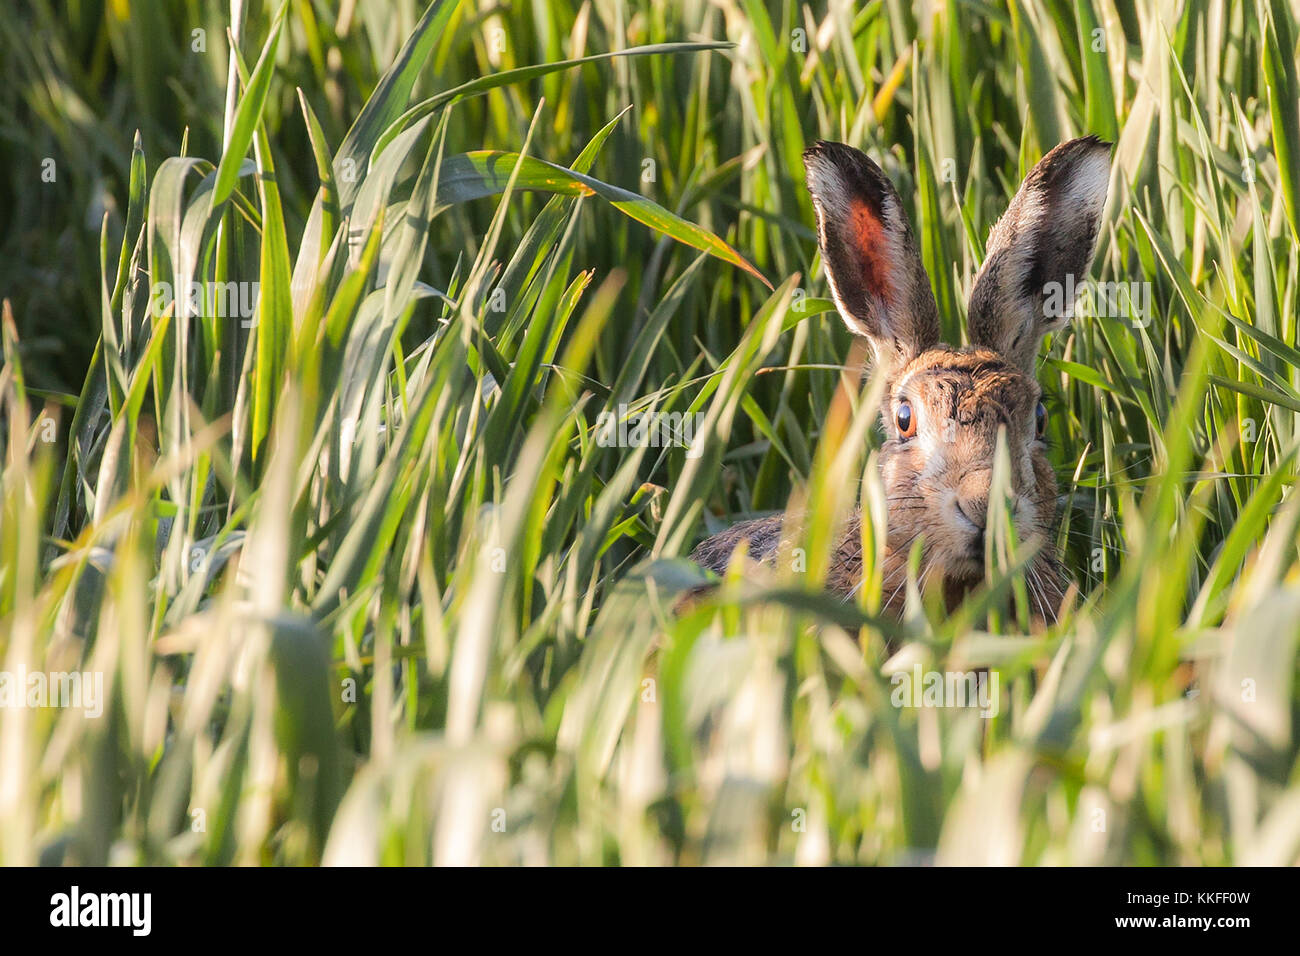 Norfolks wild hare peeking above the crop field looking at the camera close up. Norfolk in the UK has a lot of hares - Stock Image